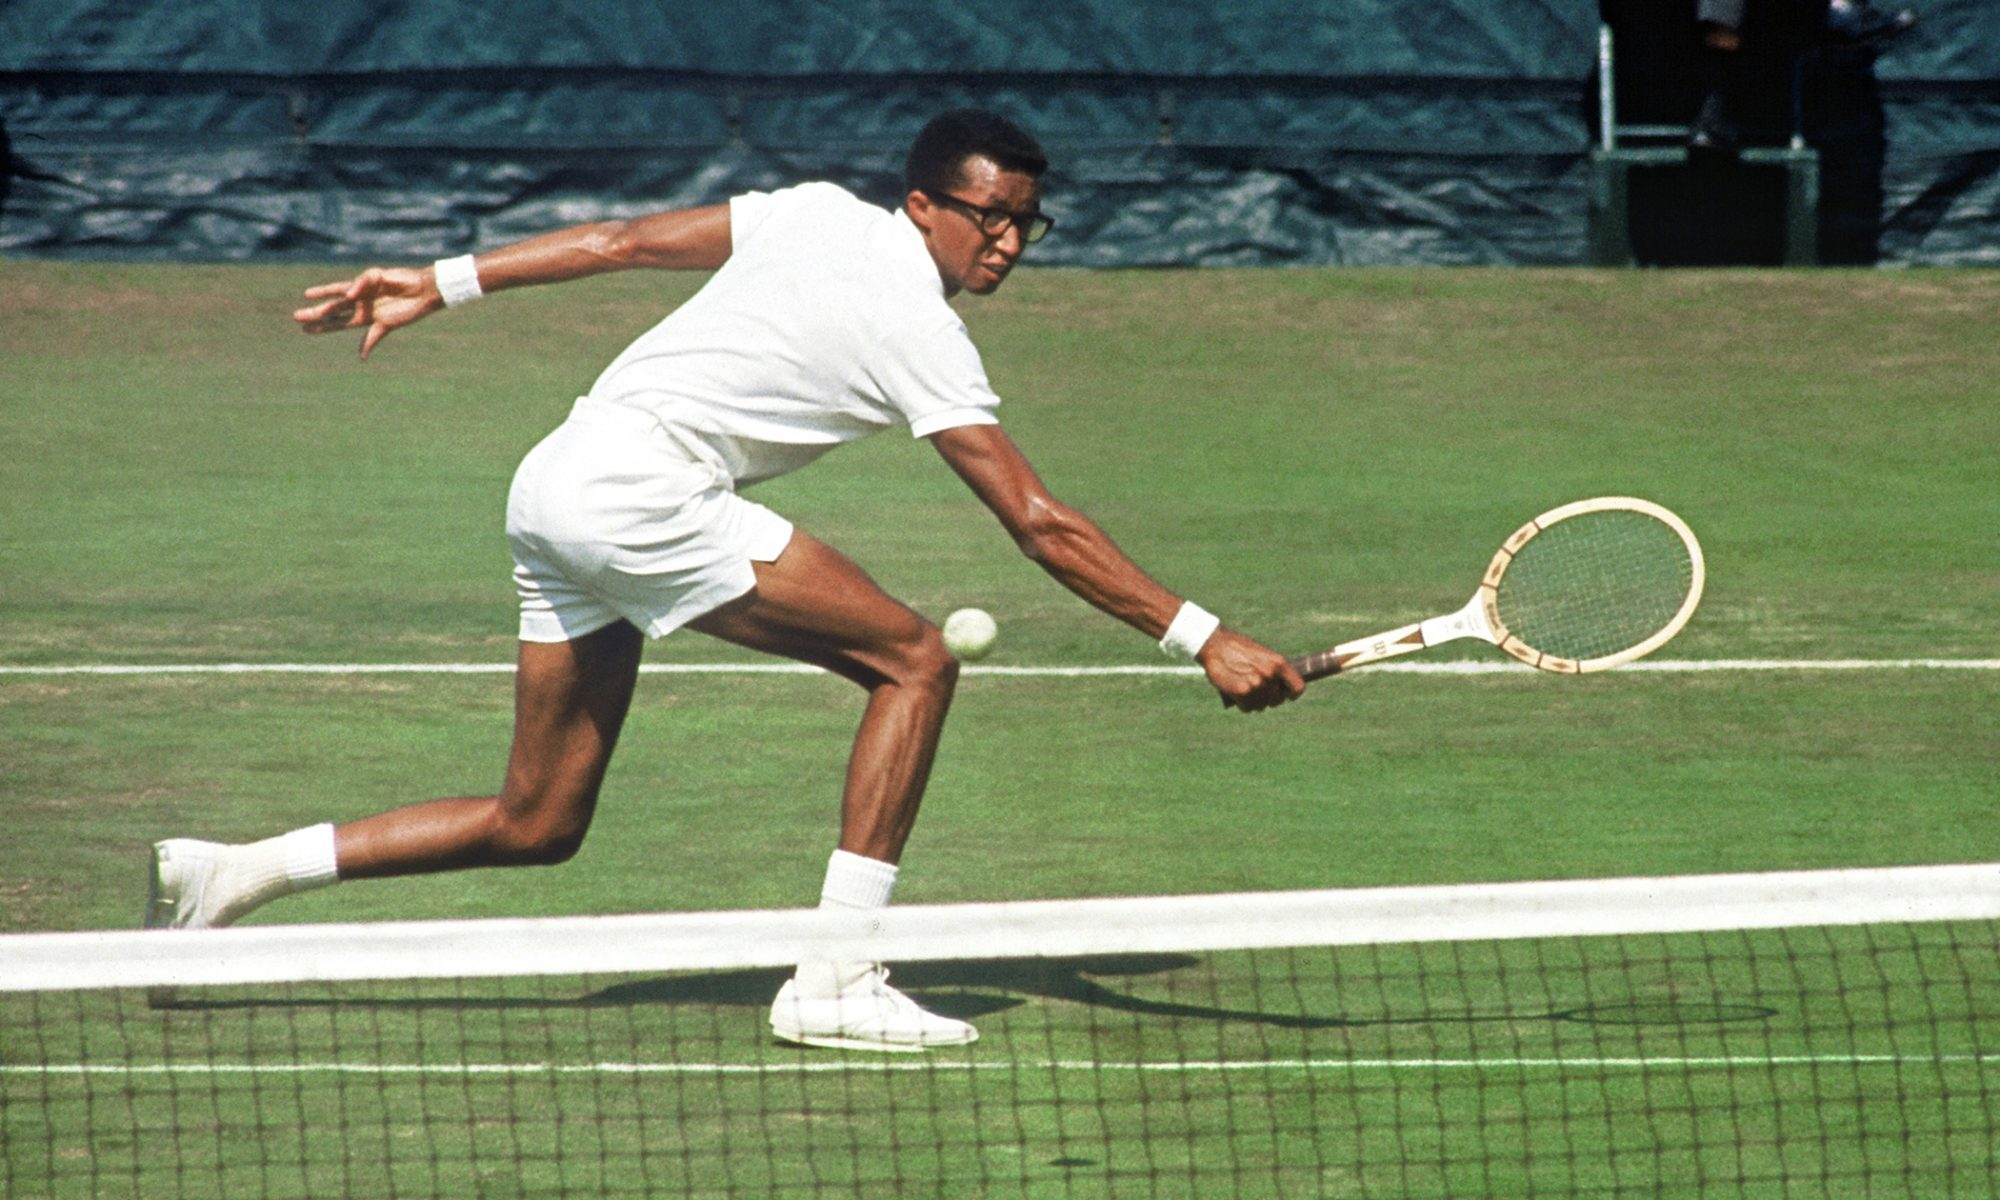 Arthur Ashe reaches for a backhand